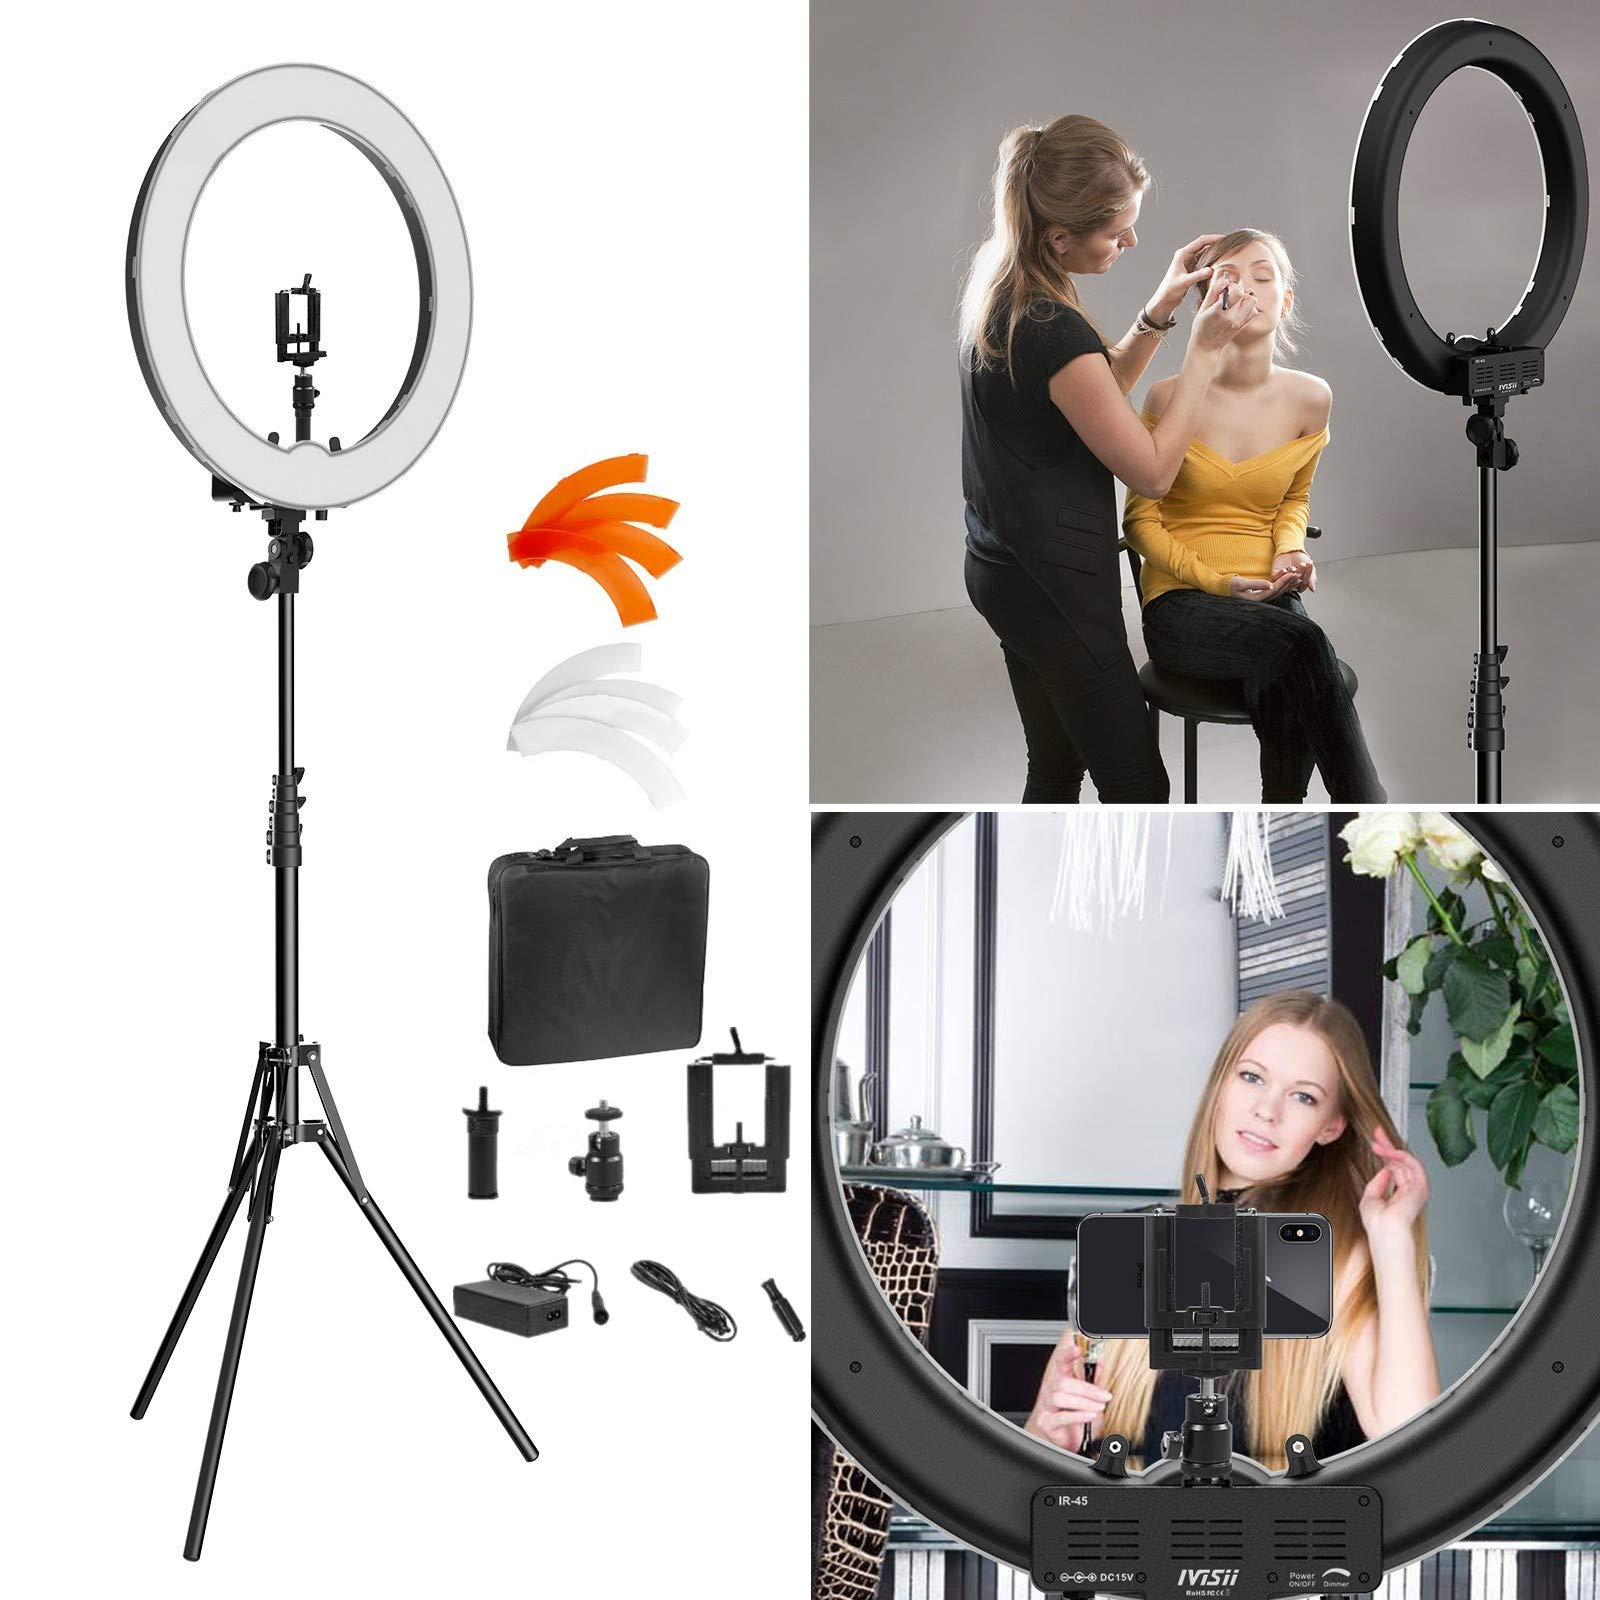 Ring Light Kit:18'' 48cm Outer 55W 5500K Dimmable LED Ring Light, Light Stand, Carrying Bag for Camera,Smartphone,YouTube,Self-Portrait Shooting by IVISII